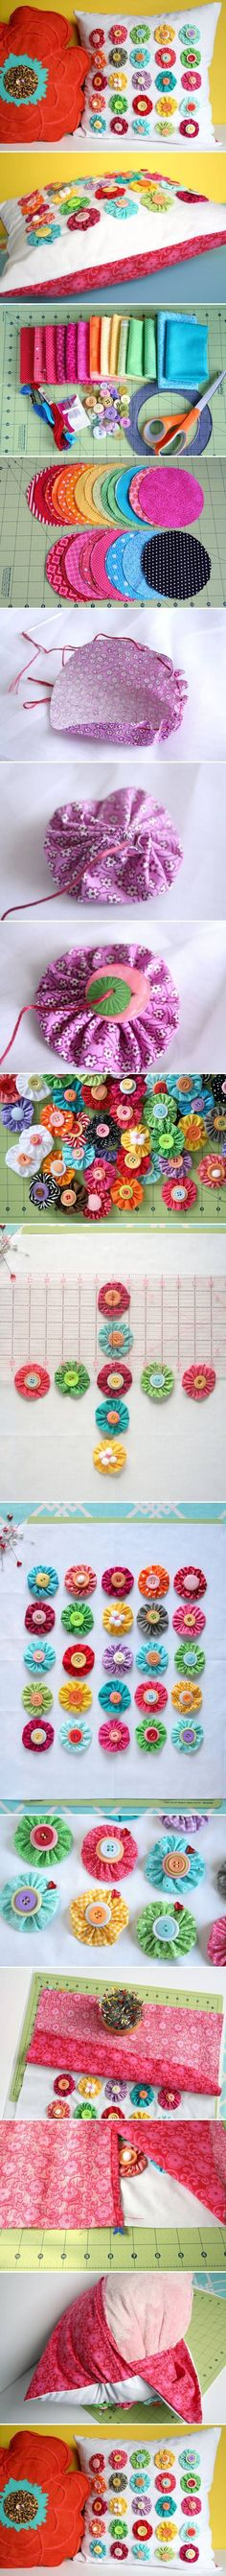 DIY Fabric Decorative Flowers DIY Fabric Decorative Flowers